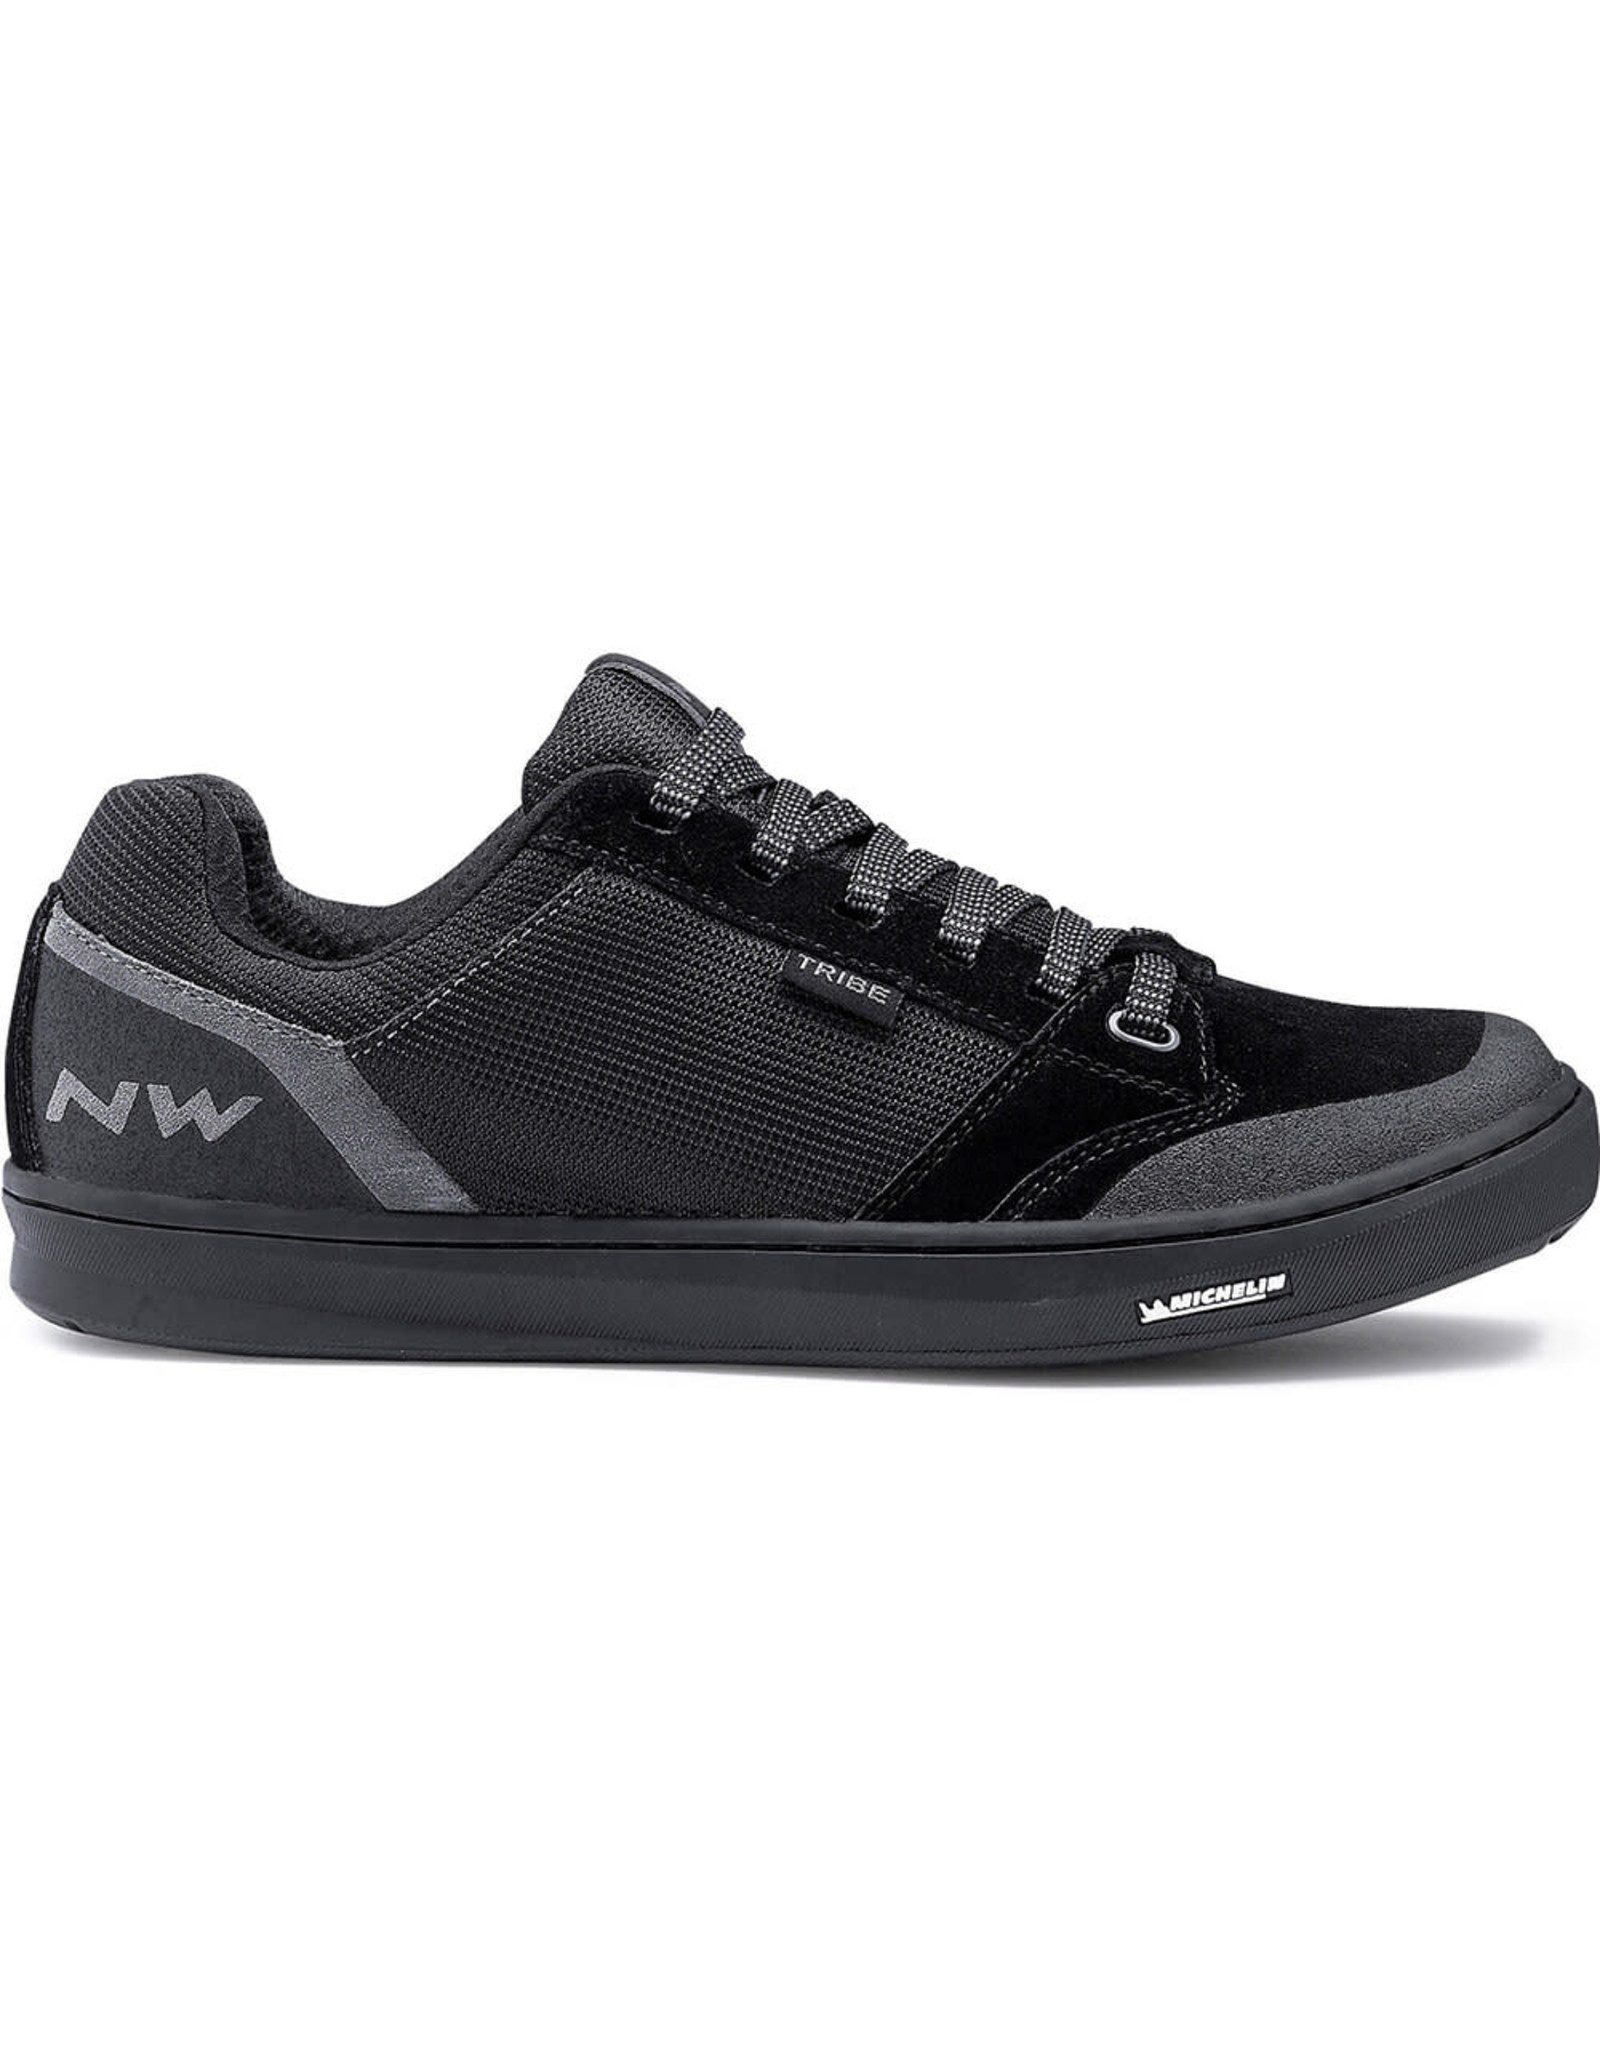 Northwave Tribe Flat Pedal Cycling Shoes